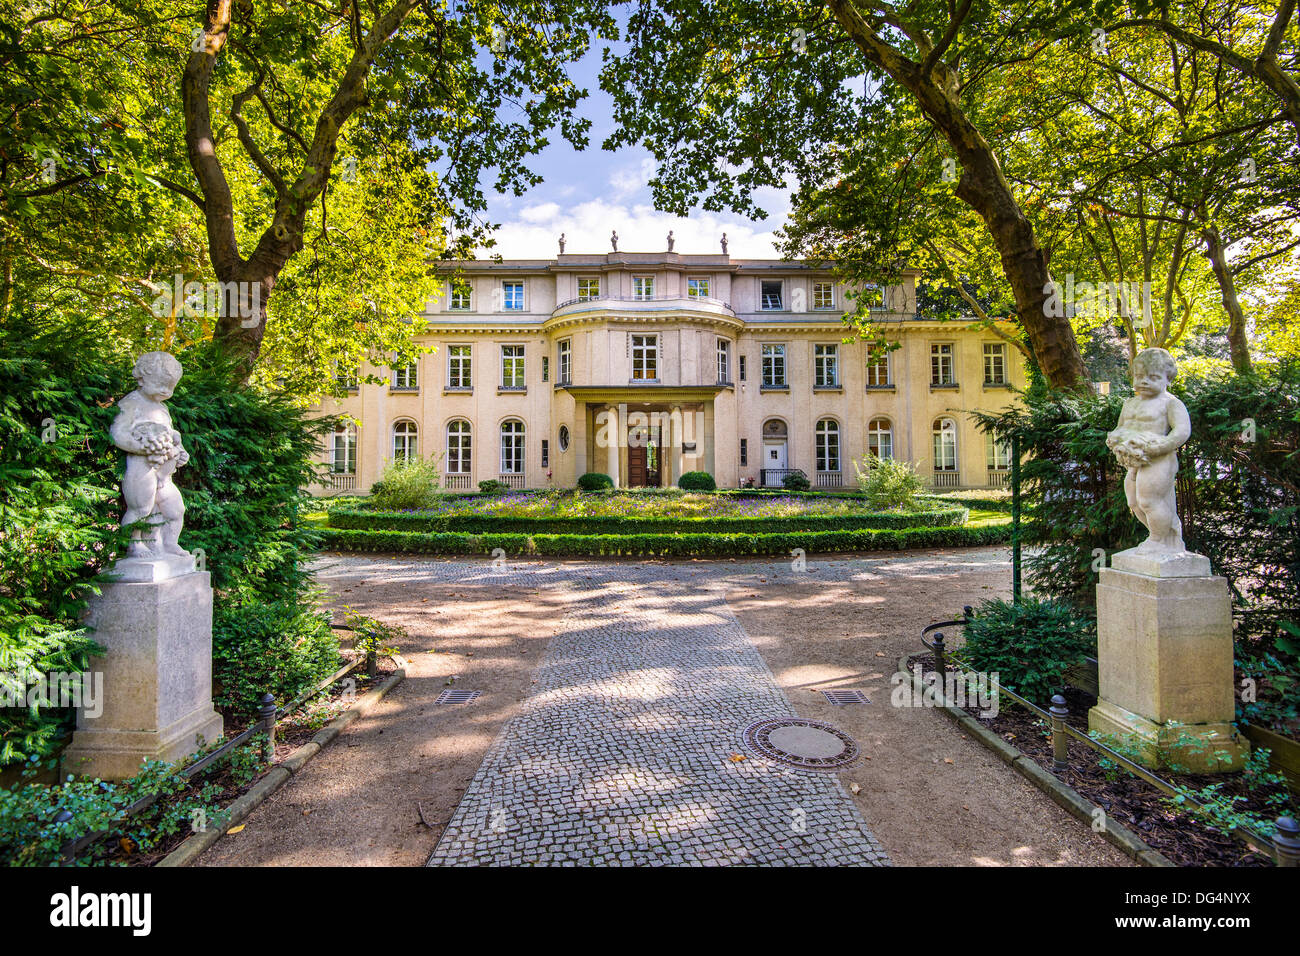 Casa Wannsee a Berlino, Germania. Immagini Stock